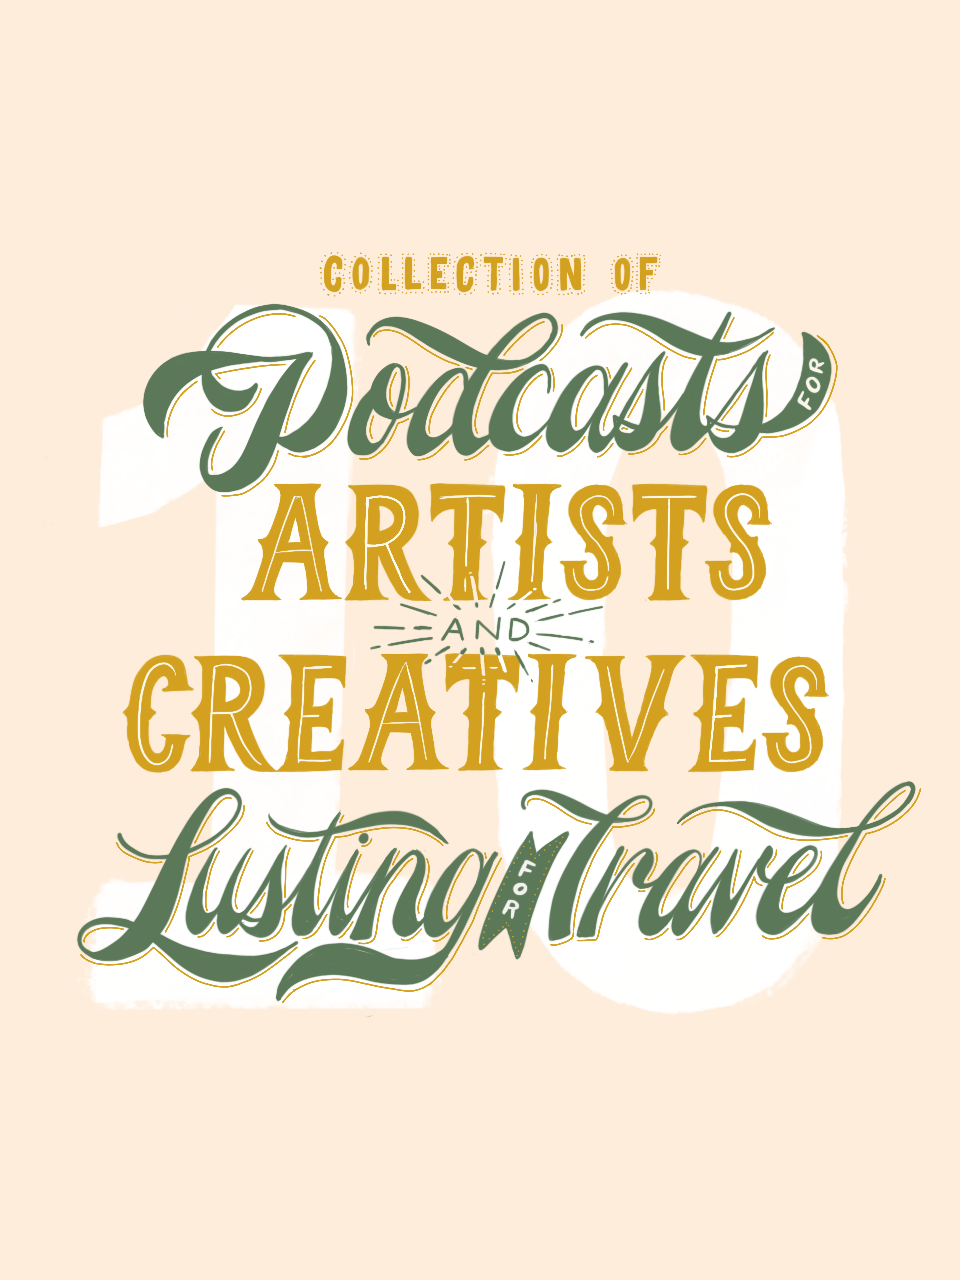 002-AngelKein-10_Podcasts_for_Creatives_and_Artists_Lusting_Travel.PNG